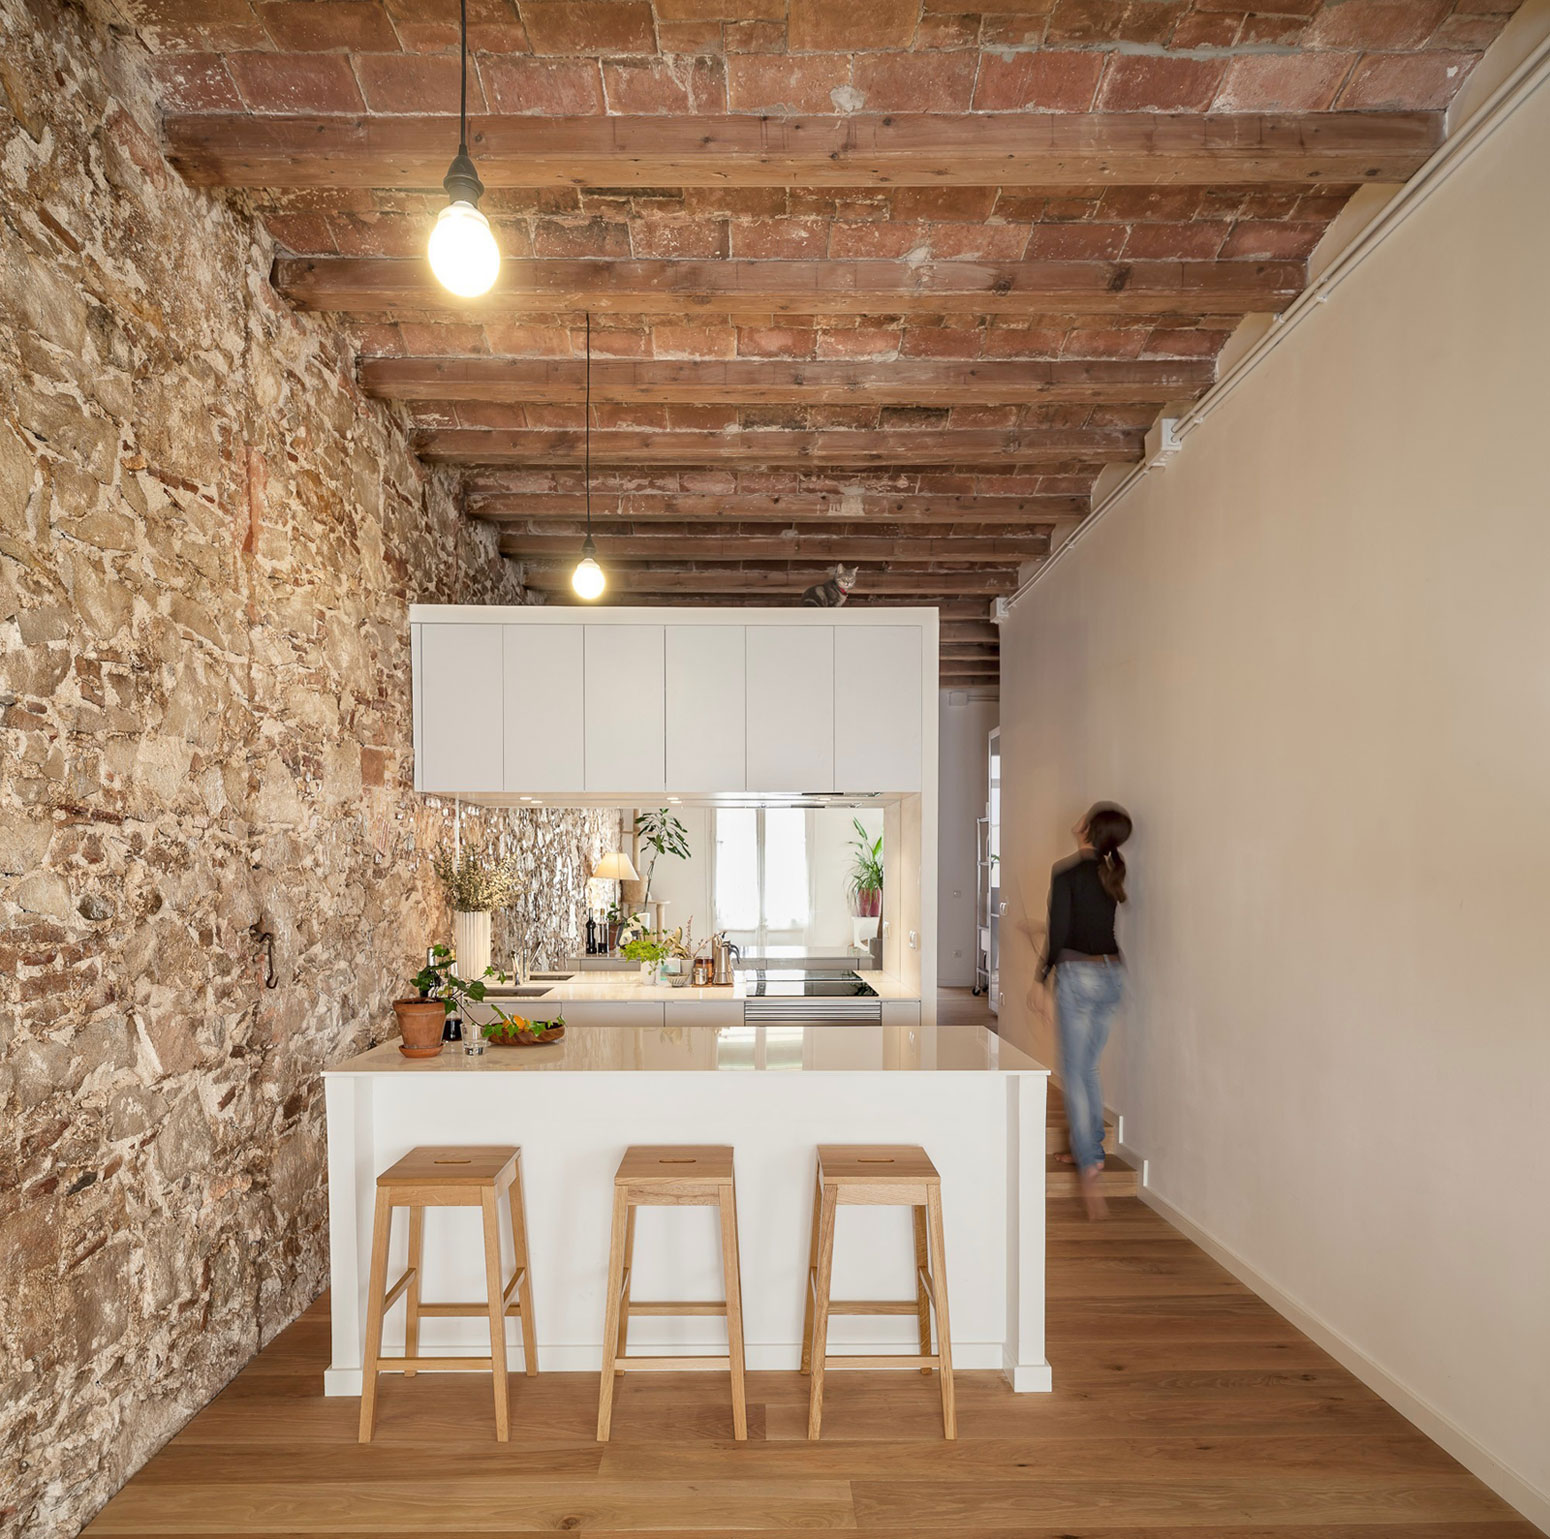 Renovation Apartment in Les Corts kitchen